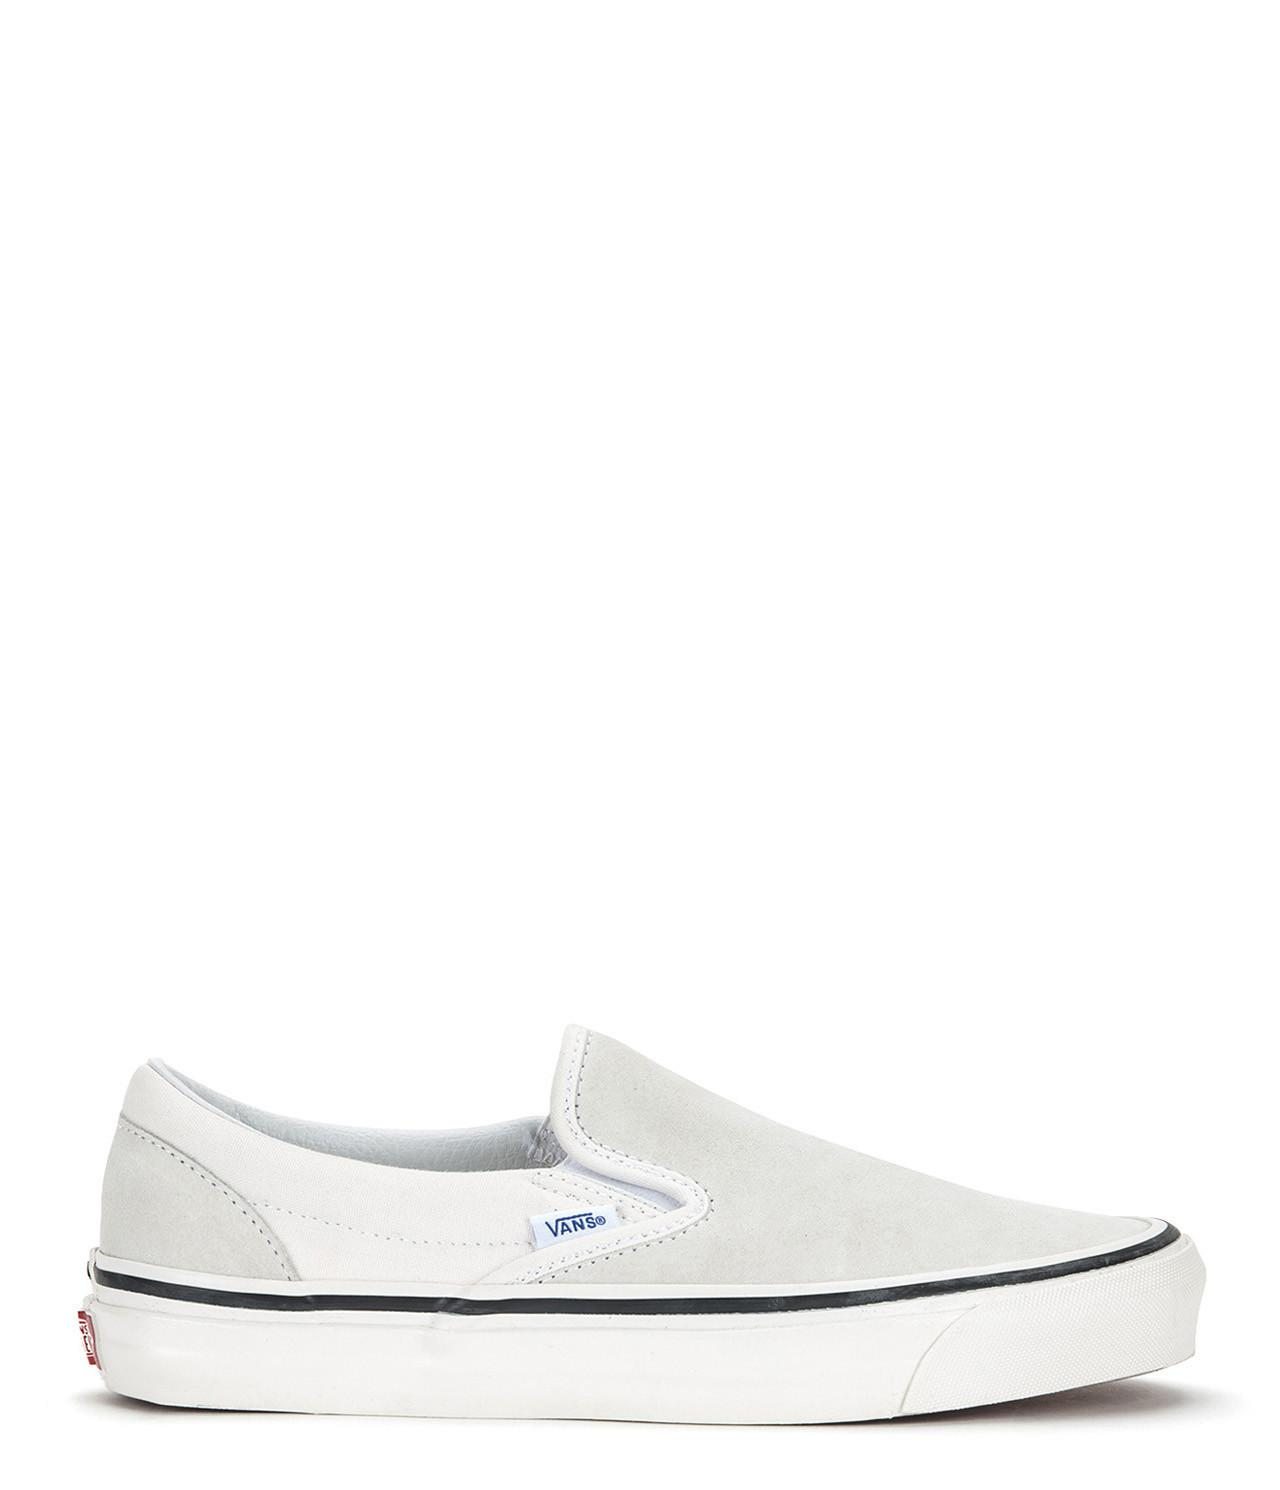 228a654589925b Vans Anaheim Factory Classic Slip-on 98 Dx in White for Men - Lyst